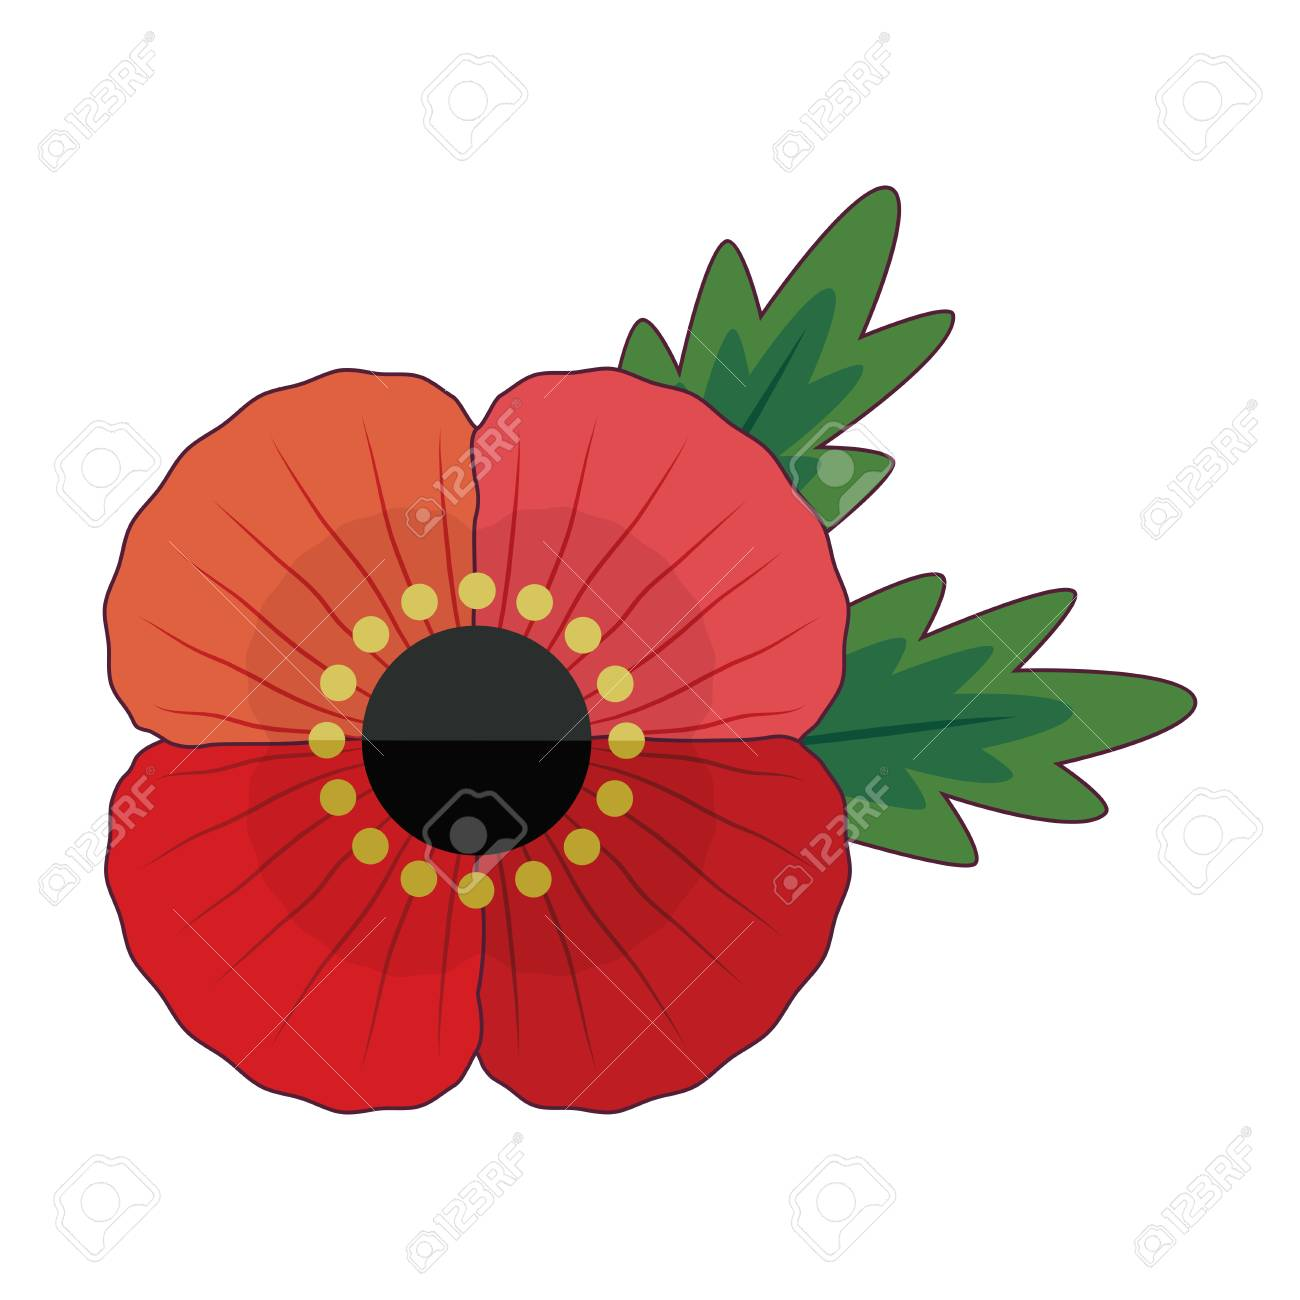 Fun Retro Style Red Poppy Flower With Leaves For Anzac And